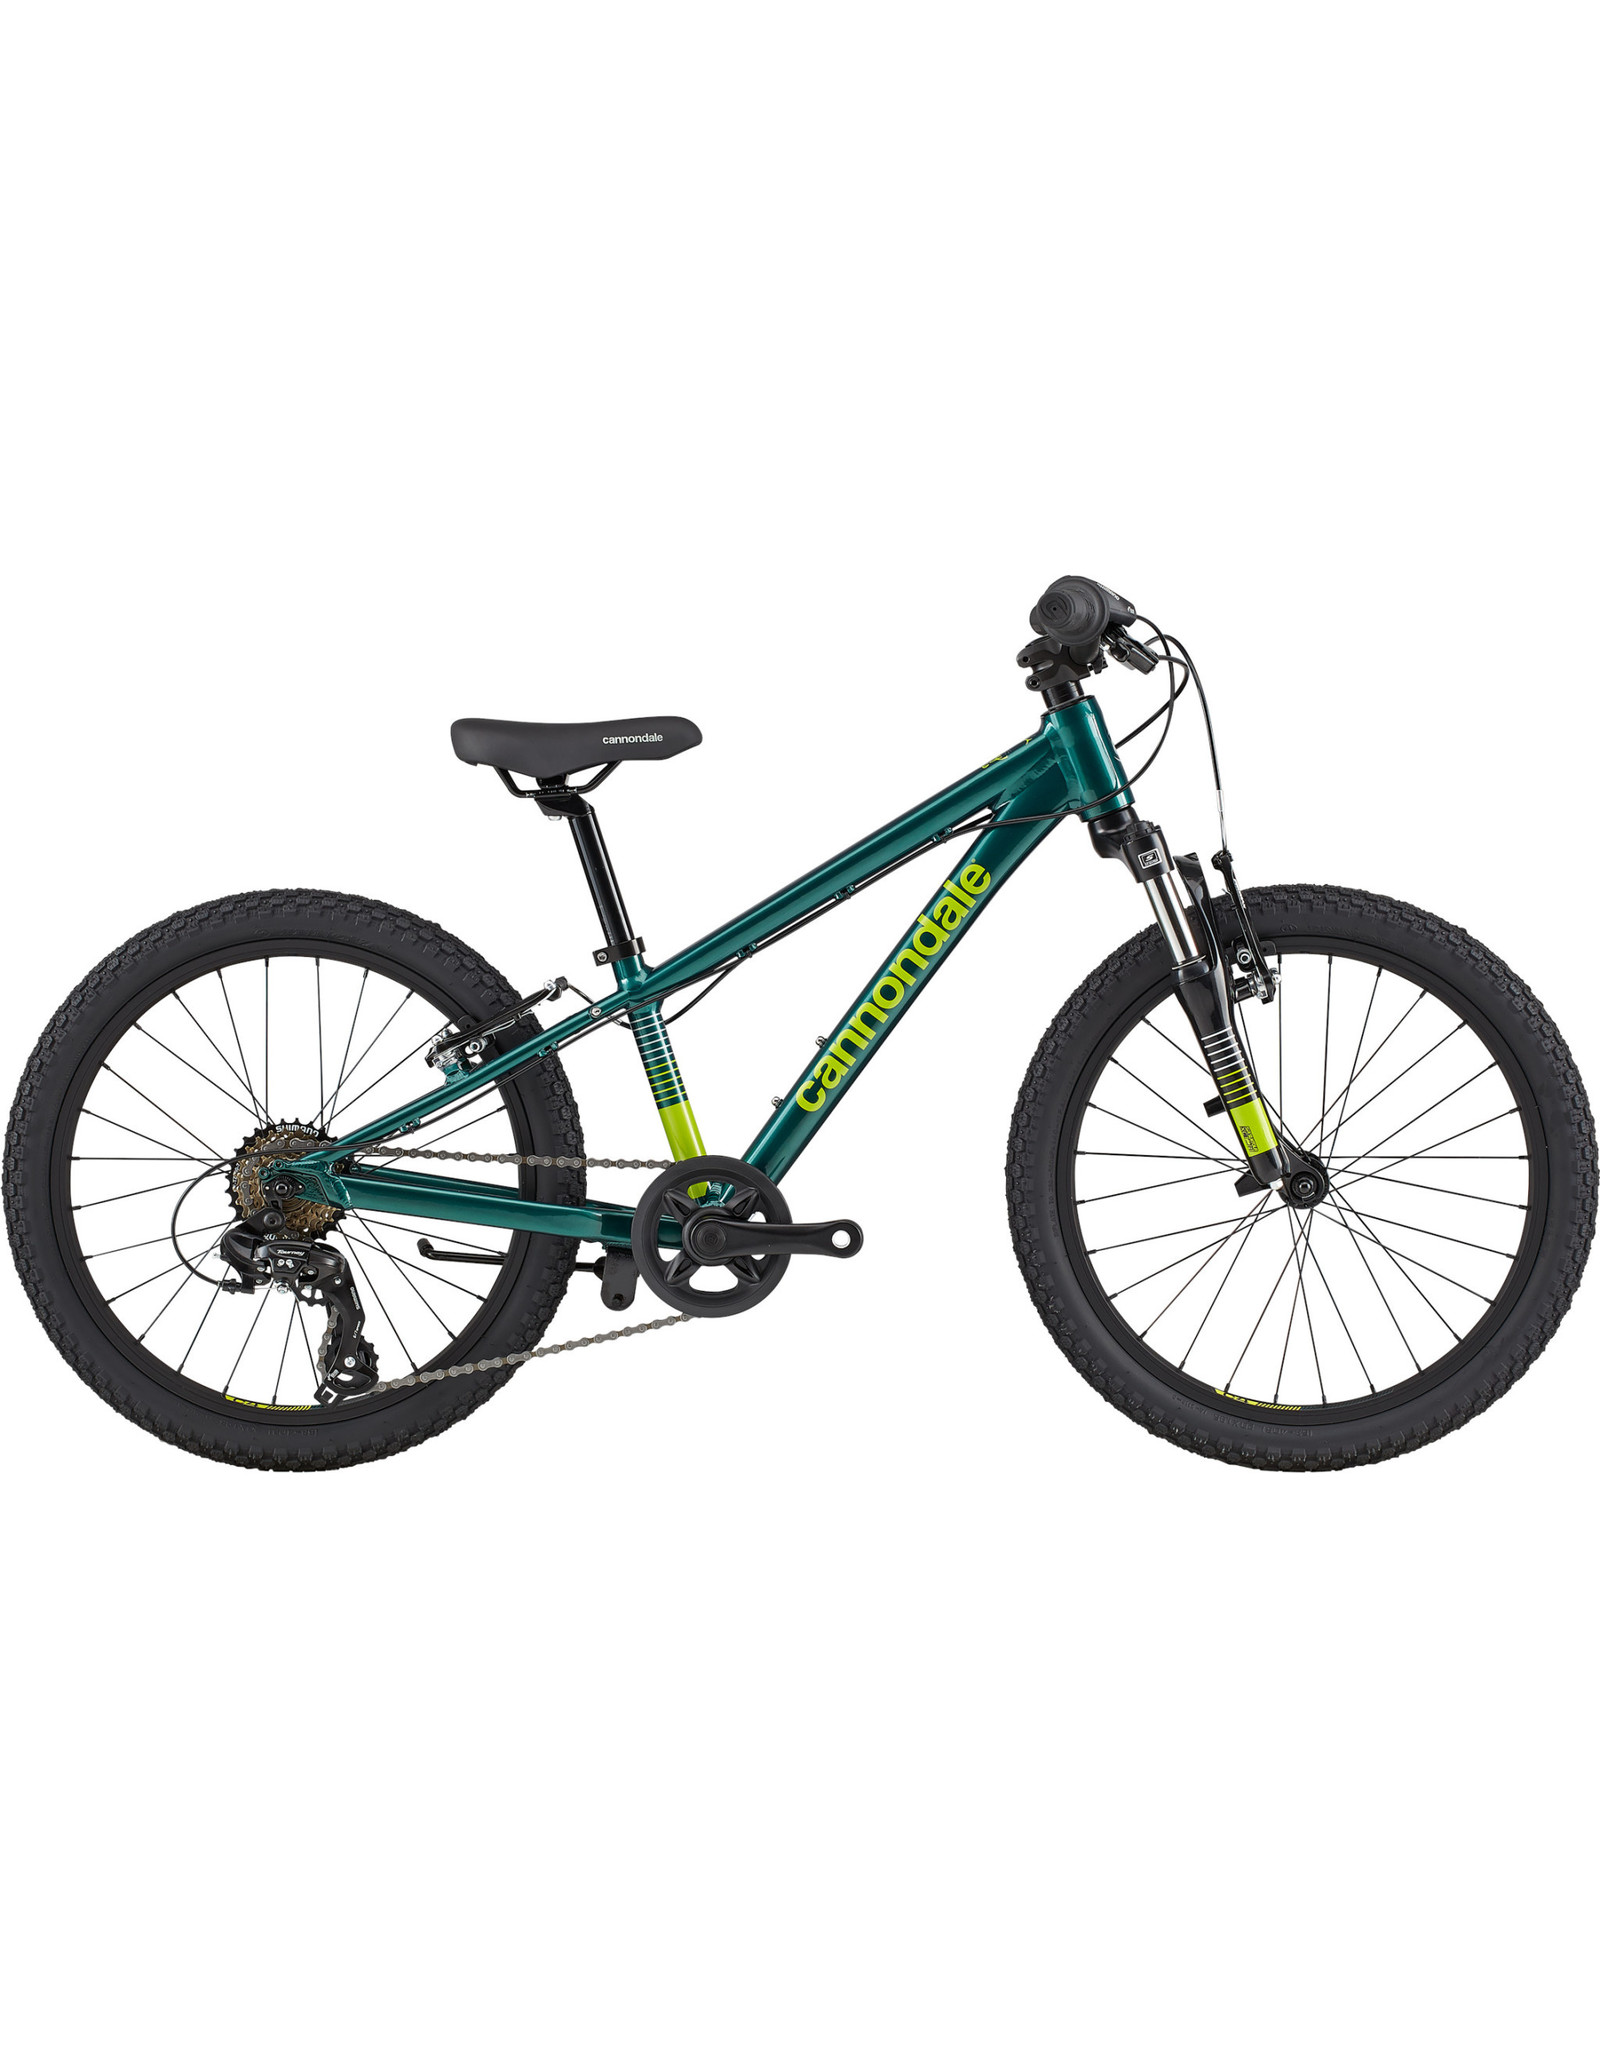 Cannondale Cannondale Trail 20 7spd